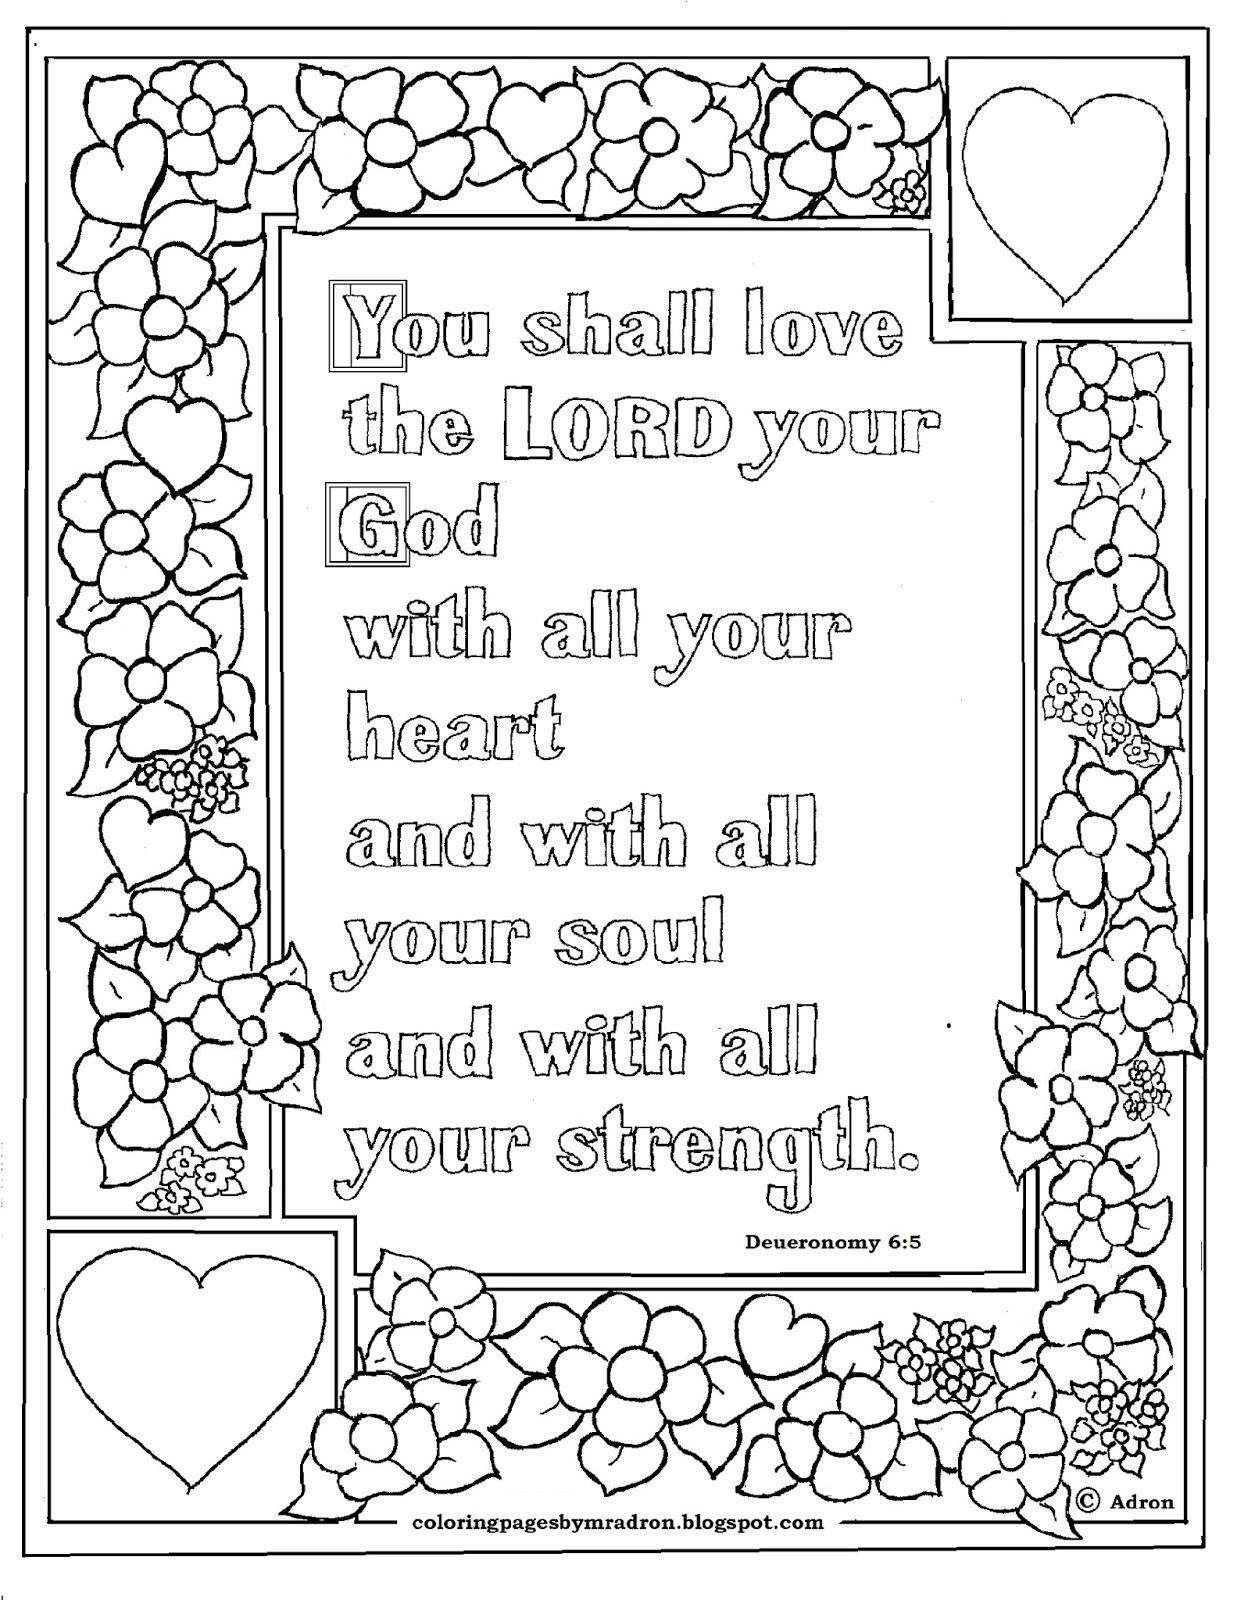 christian coloring pages with scripture Download-Deuteronomy 6 5 Bible verse to print and color This is a free printable Bible verse coloring page it is perfect for children and adults t 9-l